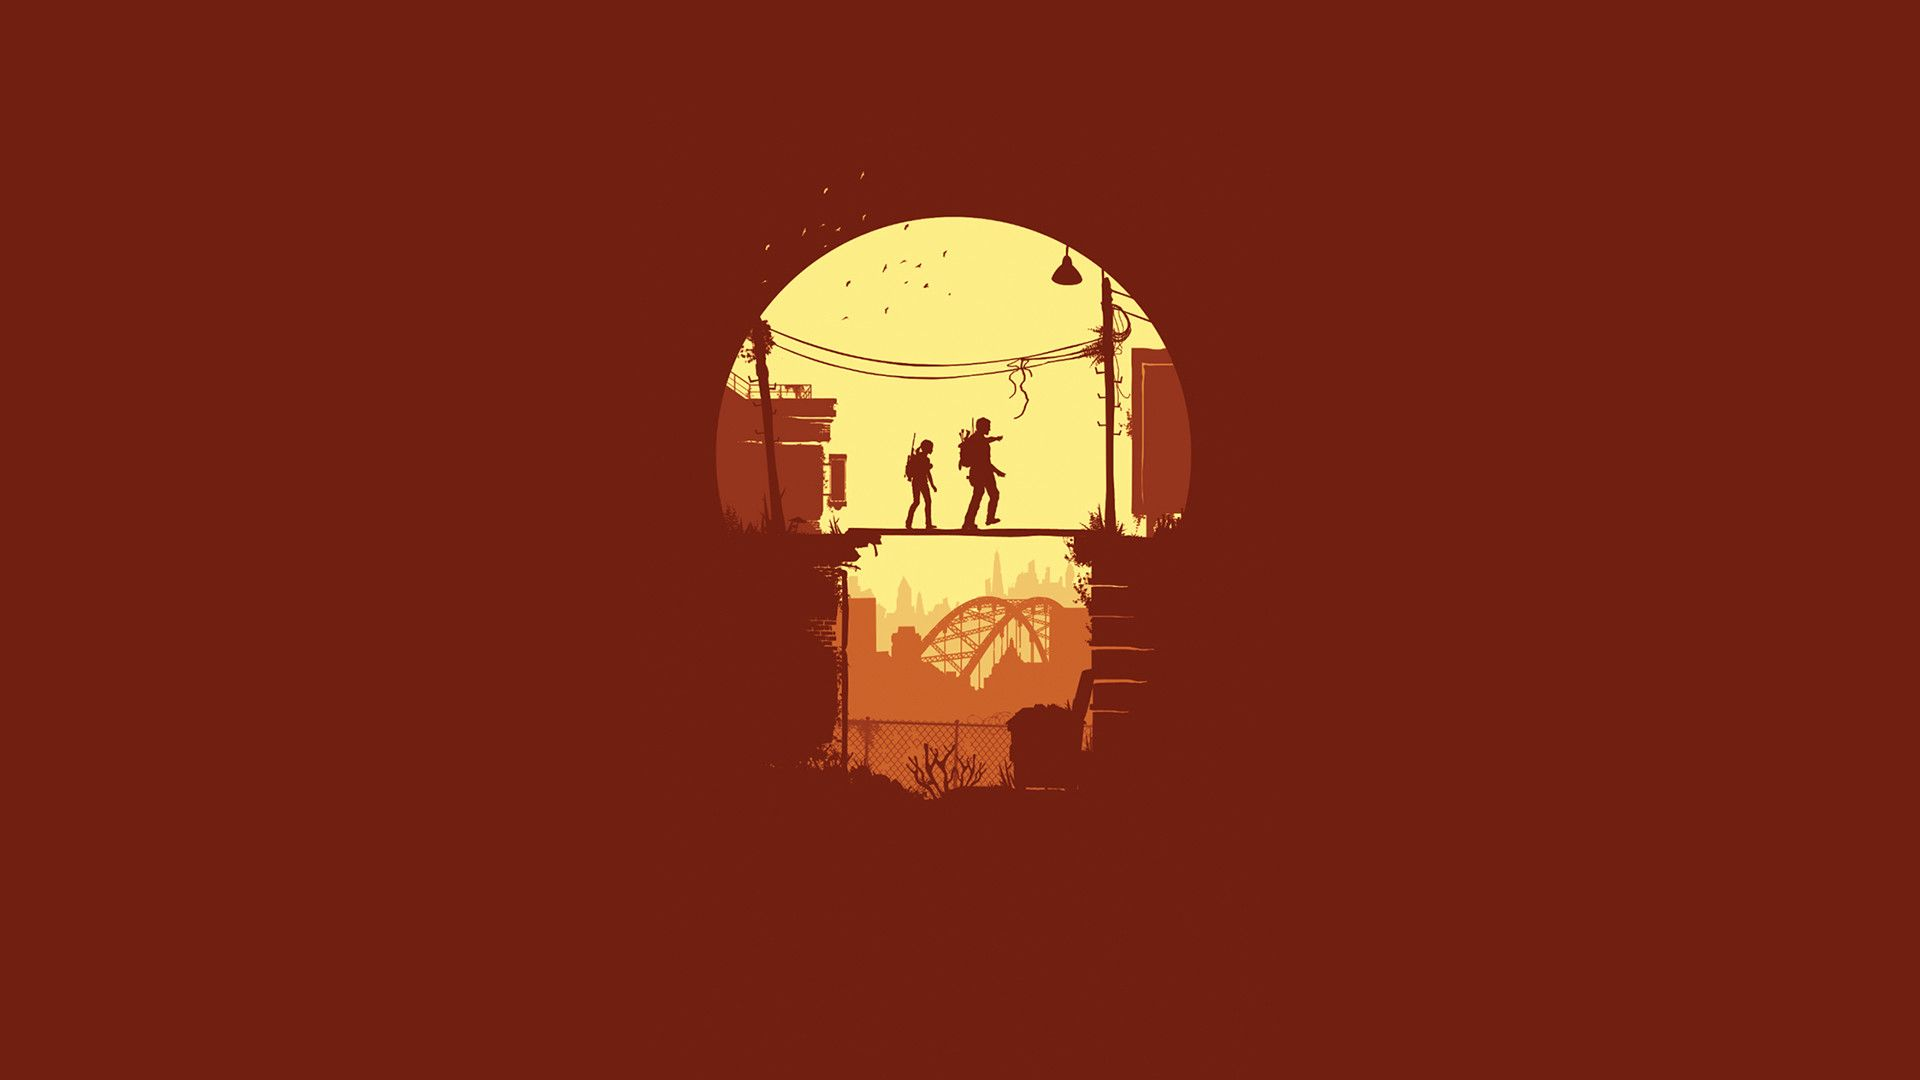 The Last Of Us Wallpapers Minimalist Artwork Gaming Wallpapers